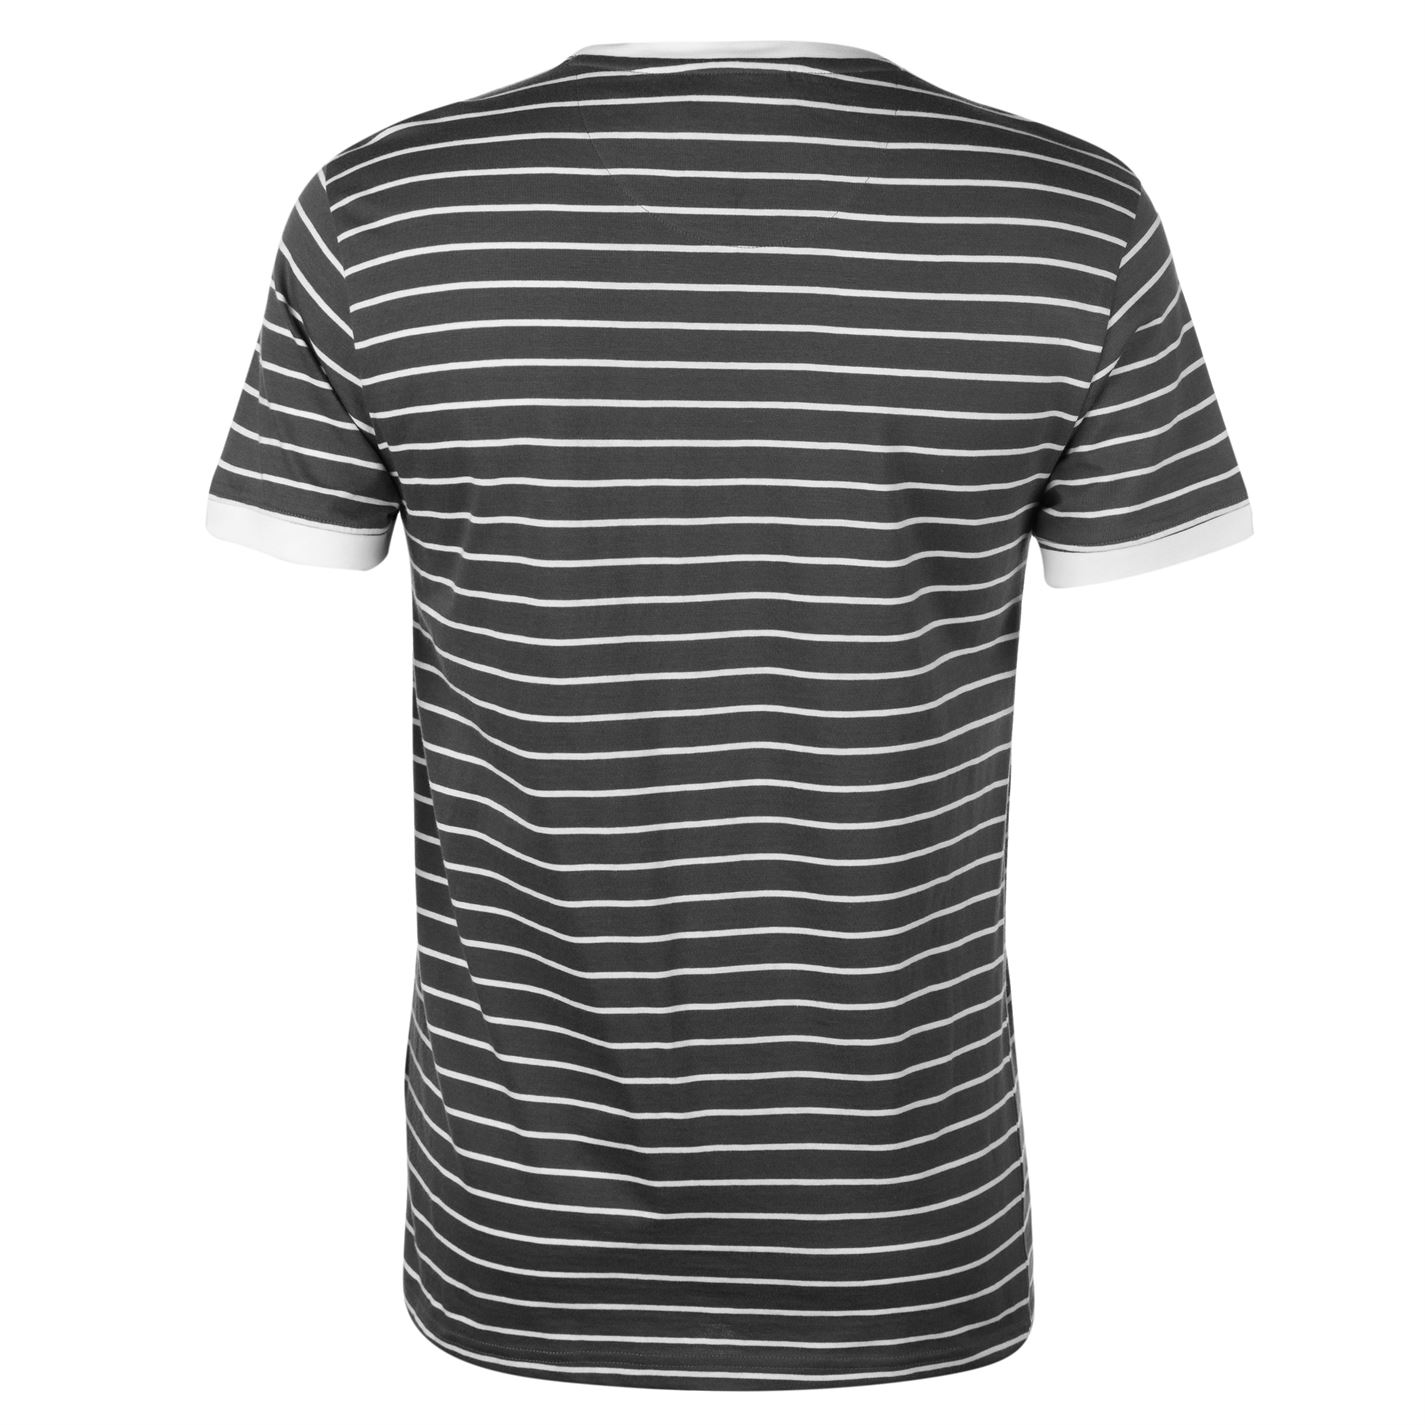 Pierre-Cardin-Mens-Stripe-Ringer-T-Shirt-Crew-Neck-Tee-Top-Short-Sleeve-Cotton thumbnail 6